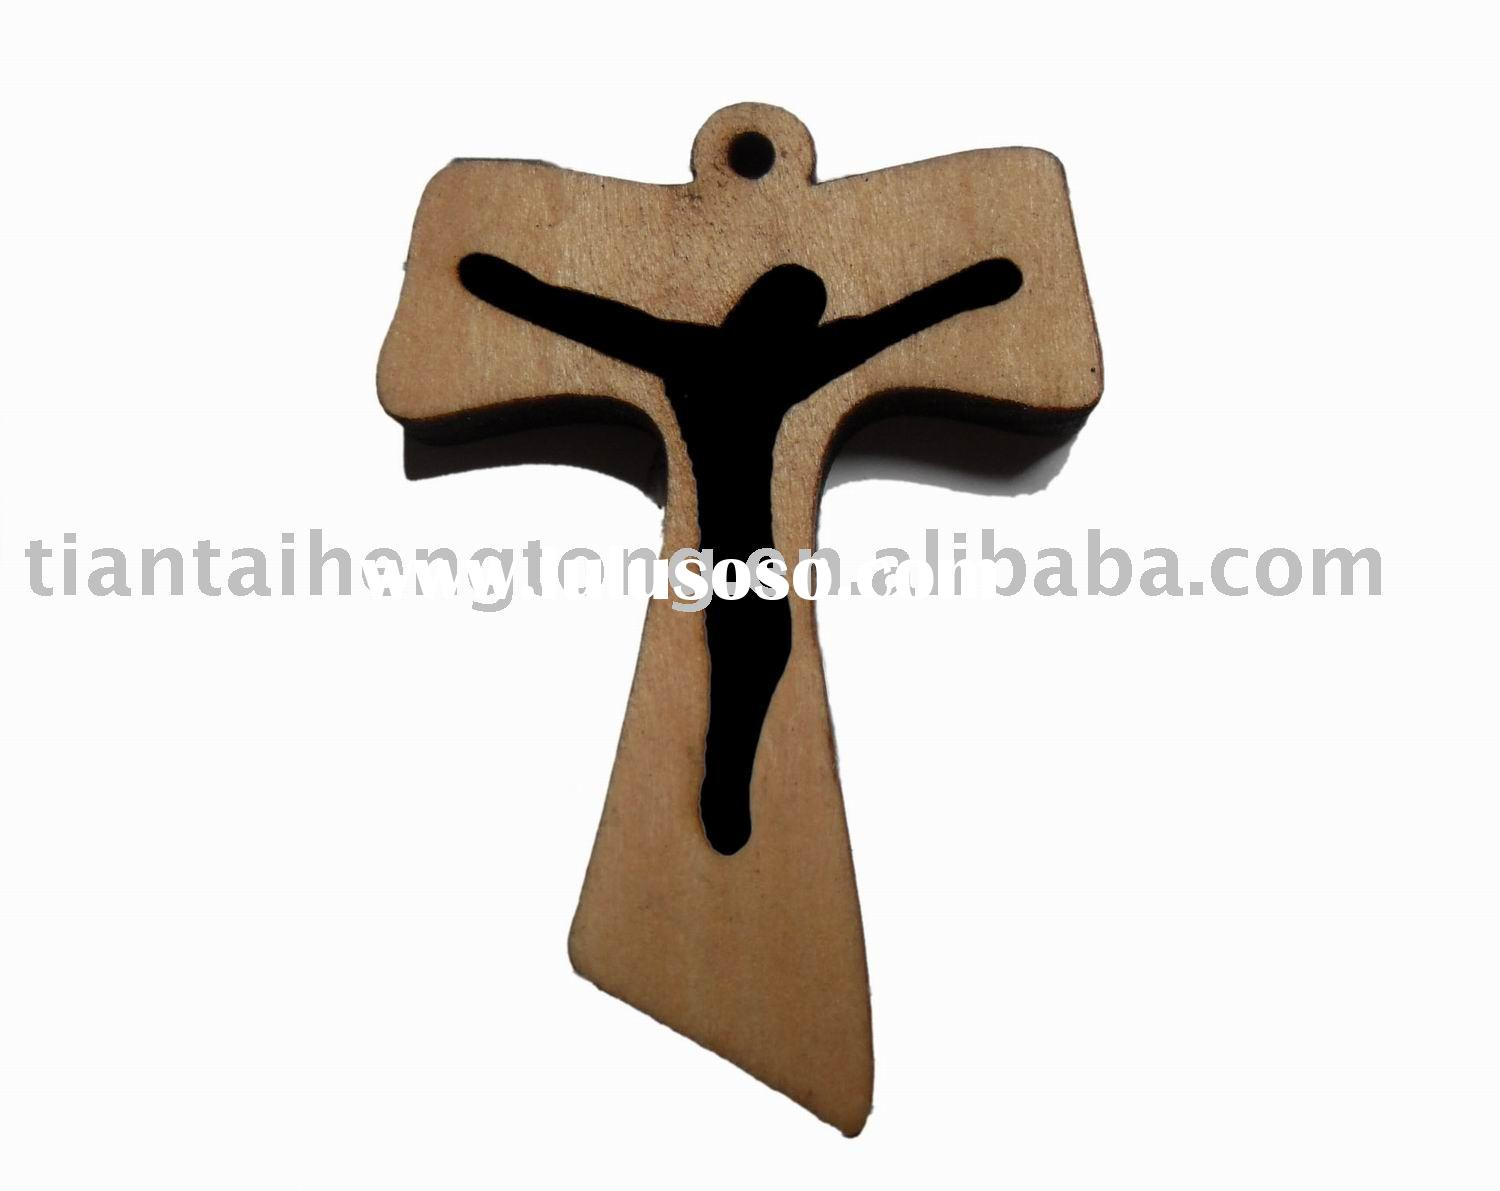 Wooden religious gifts nyc